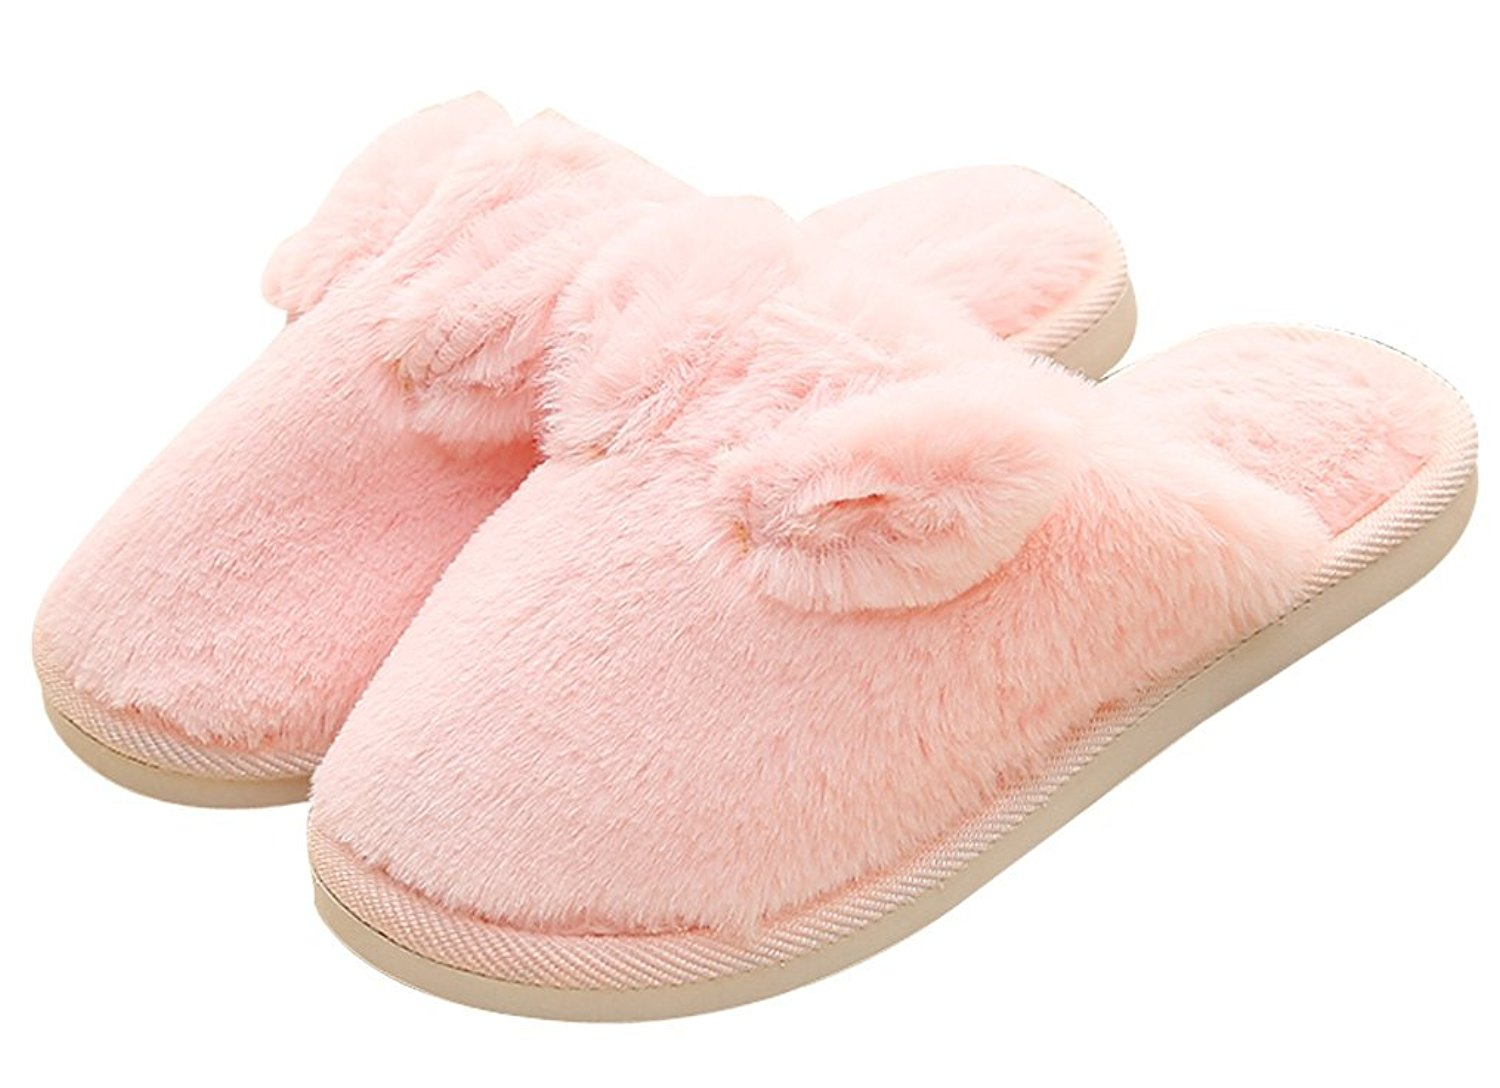 02ef4e1ac71 Get Quotations · C wait Womens Warm Bunny Slippers Fuzzy Slippers House  Pink Slippers